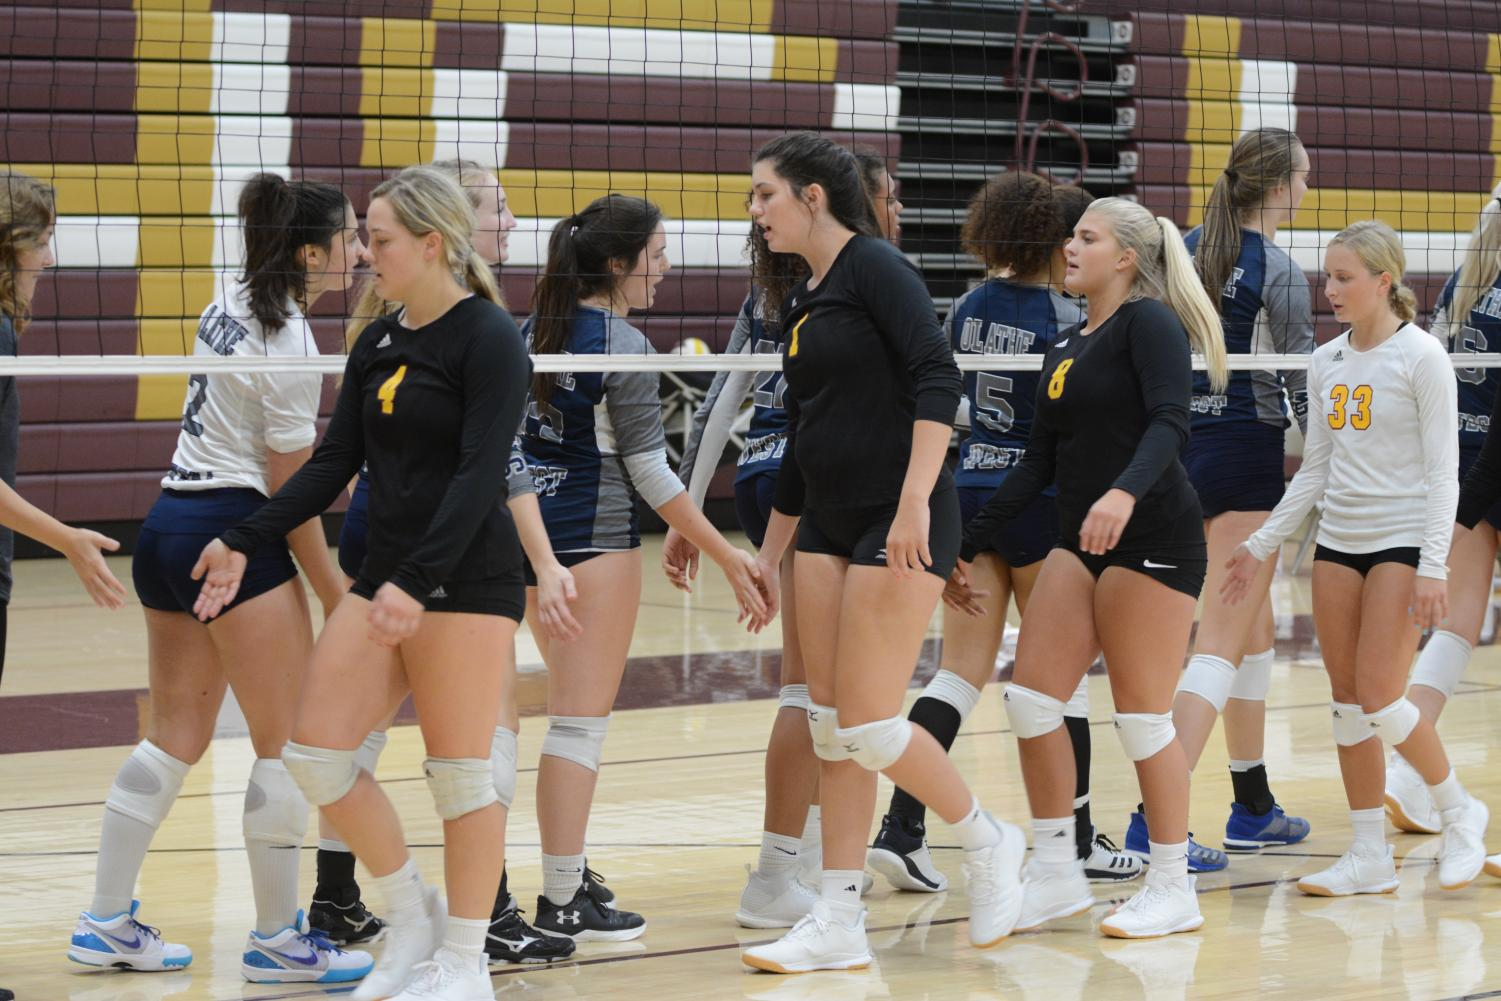 Seniors Macee Altman and Peyton Niernberger give the opposing team high fives after playing them at home on Aug. 31.